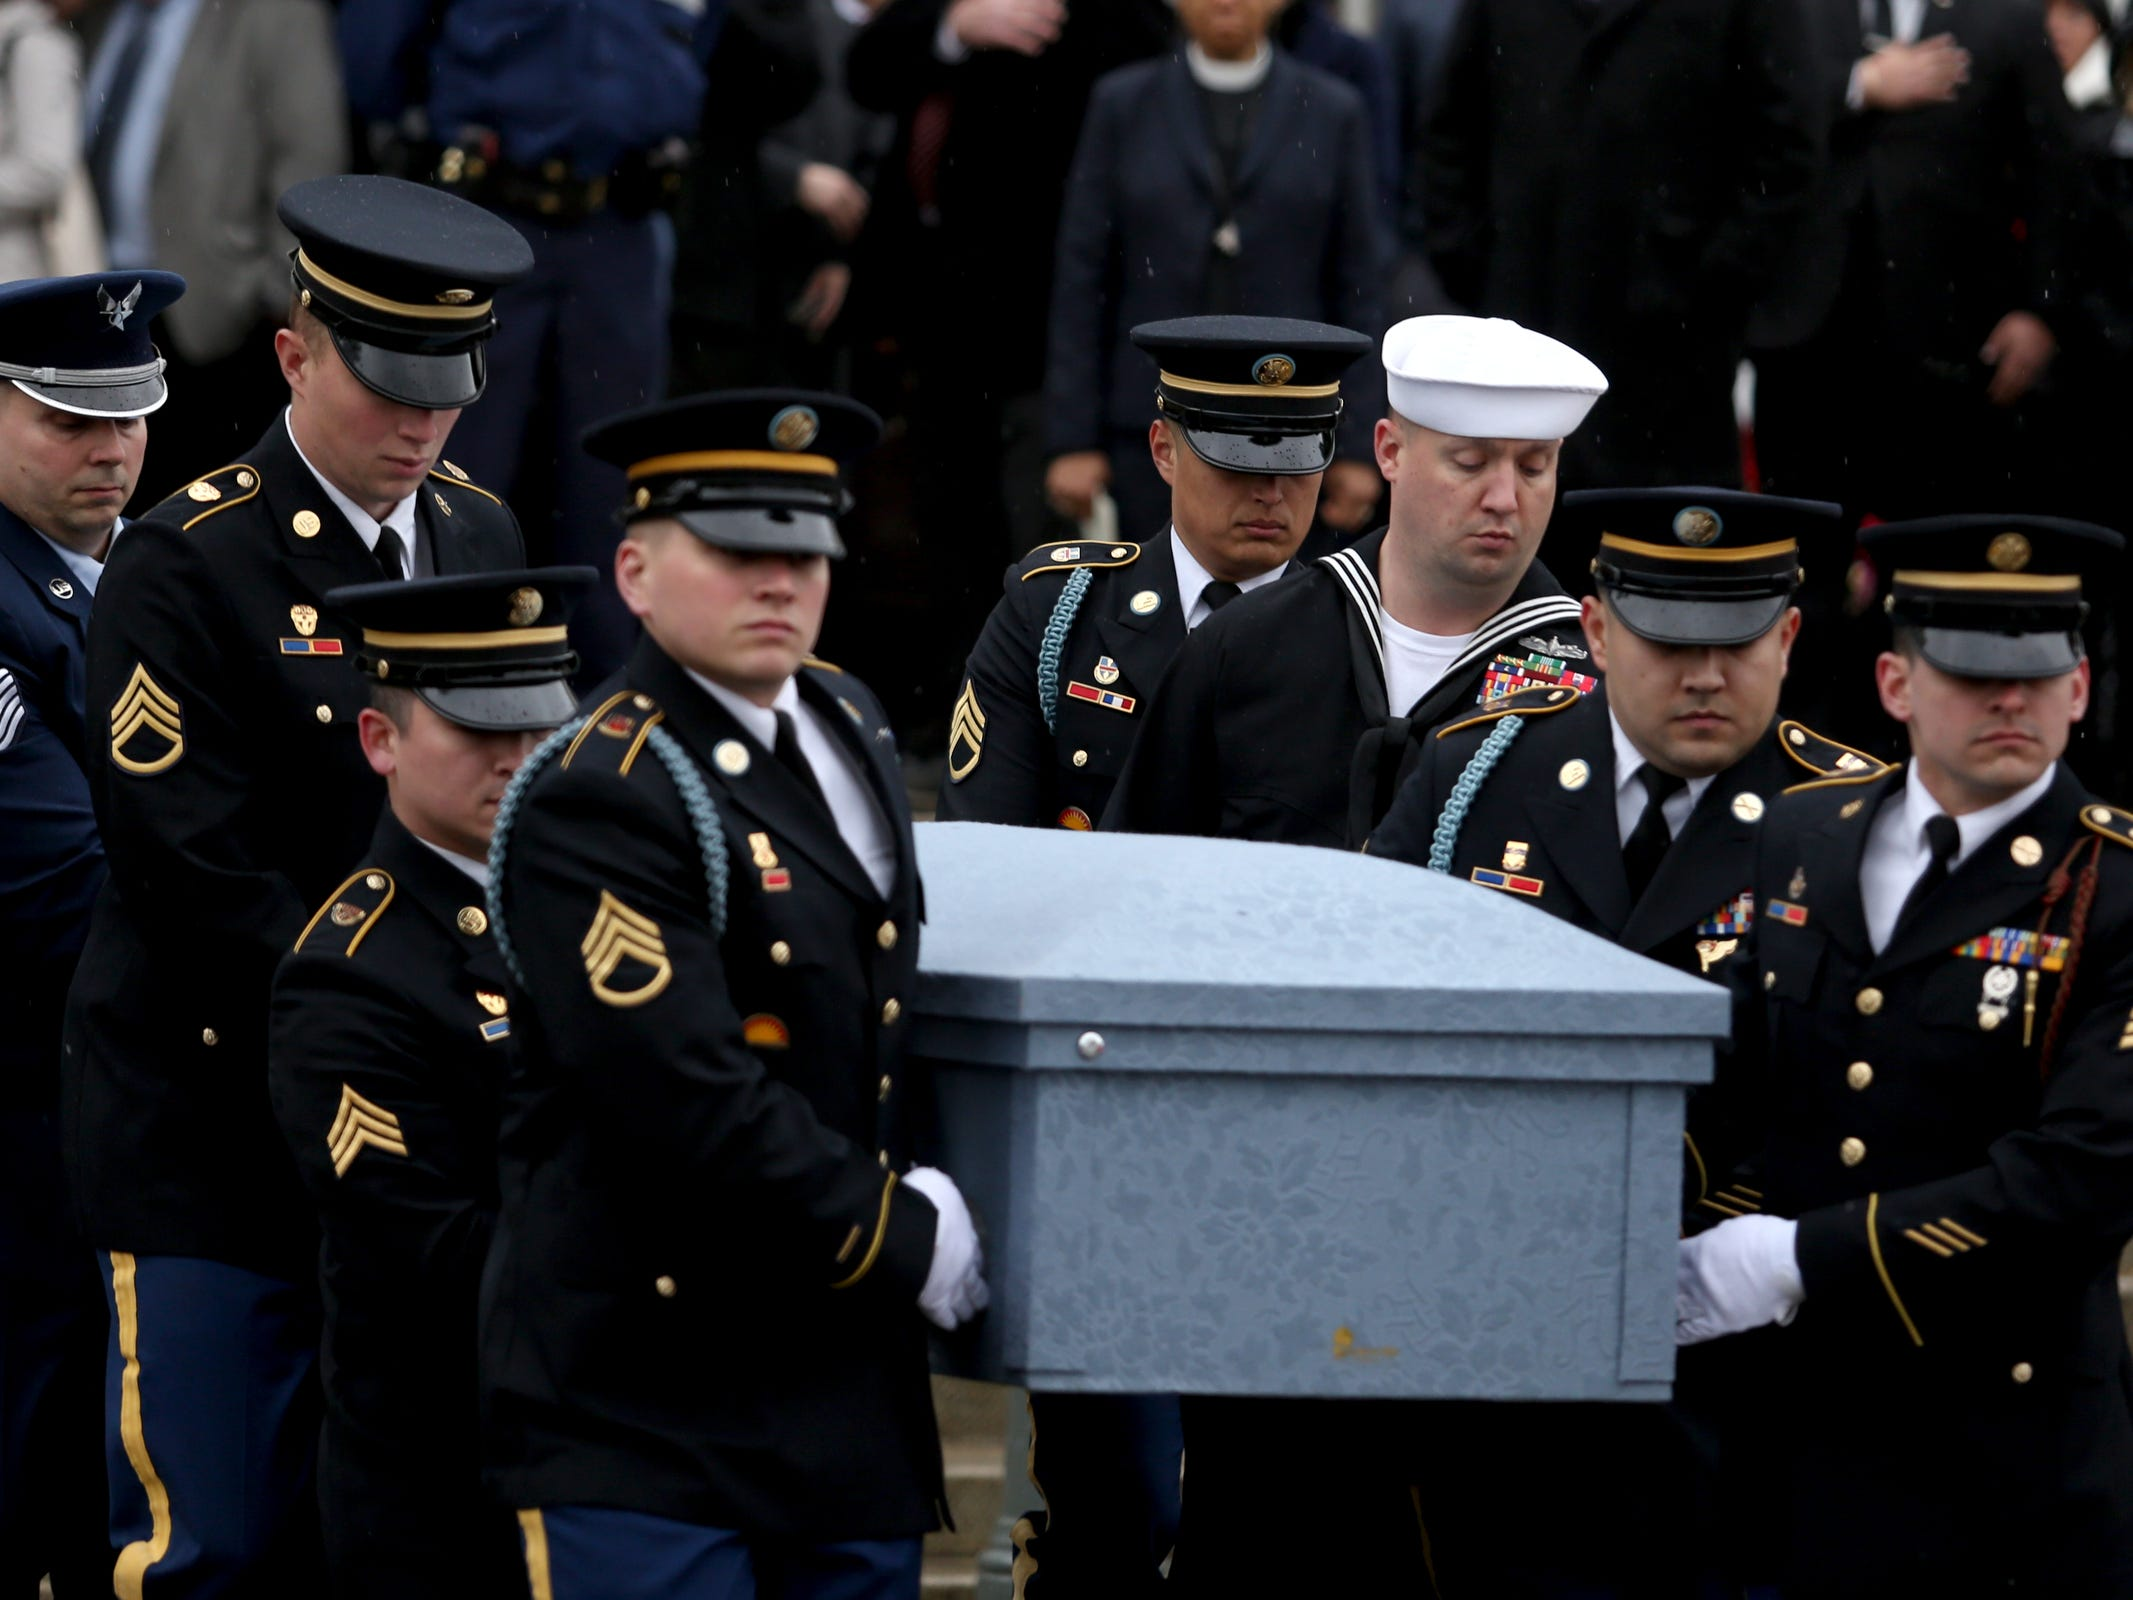 The casket is carried during the state funeral for Secretary of State Dennis Richardson at the Oregon State Capitol in Salem on Wednesday, March 6, 2019.